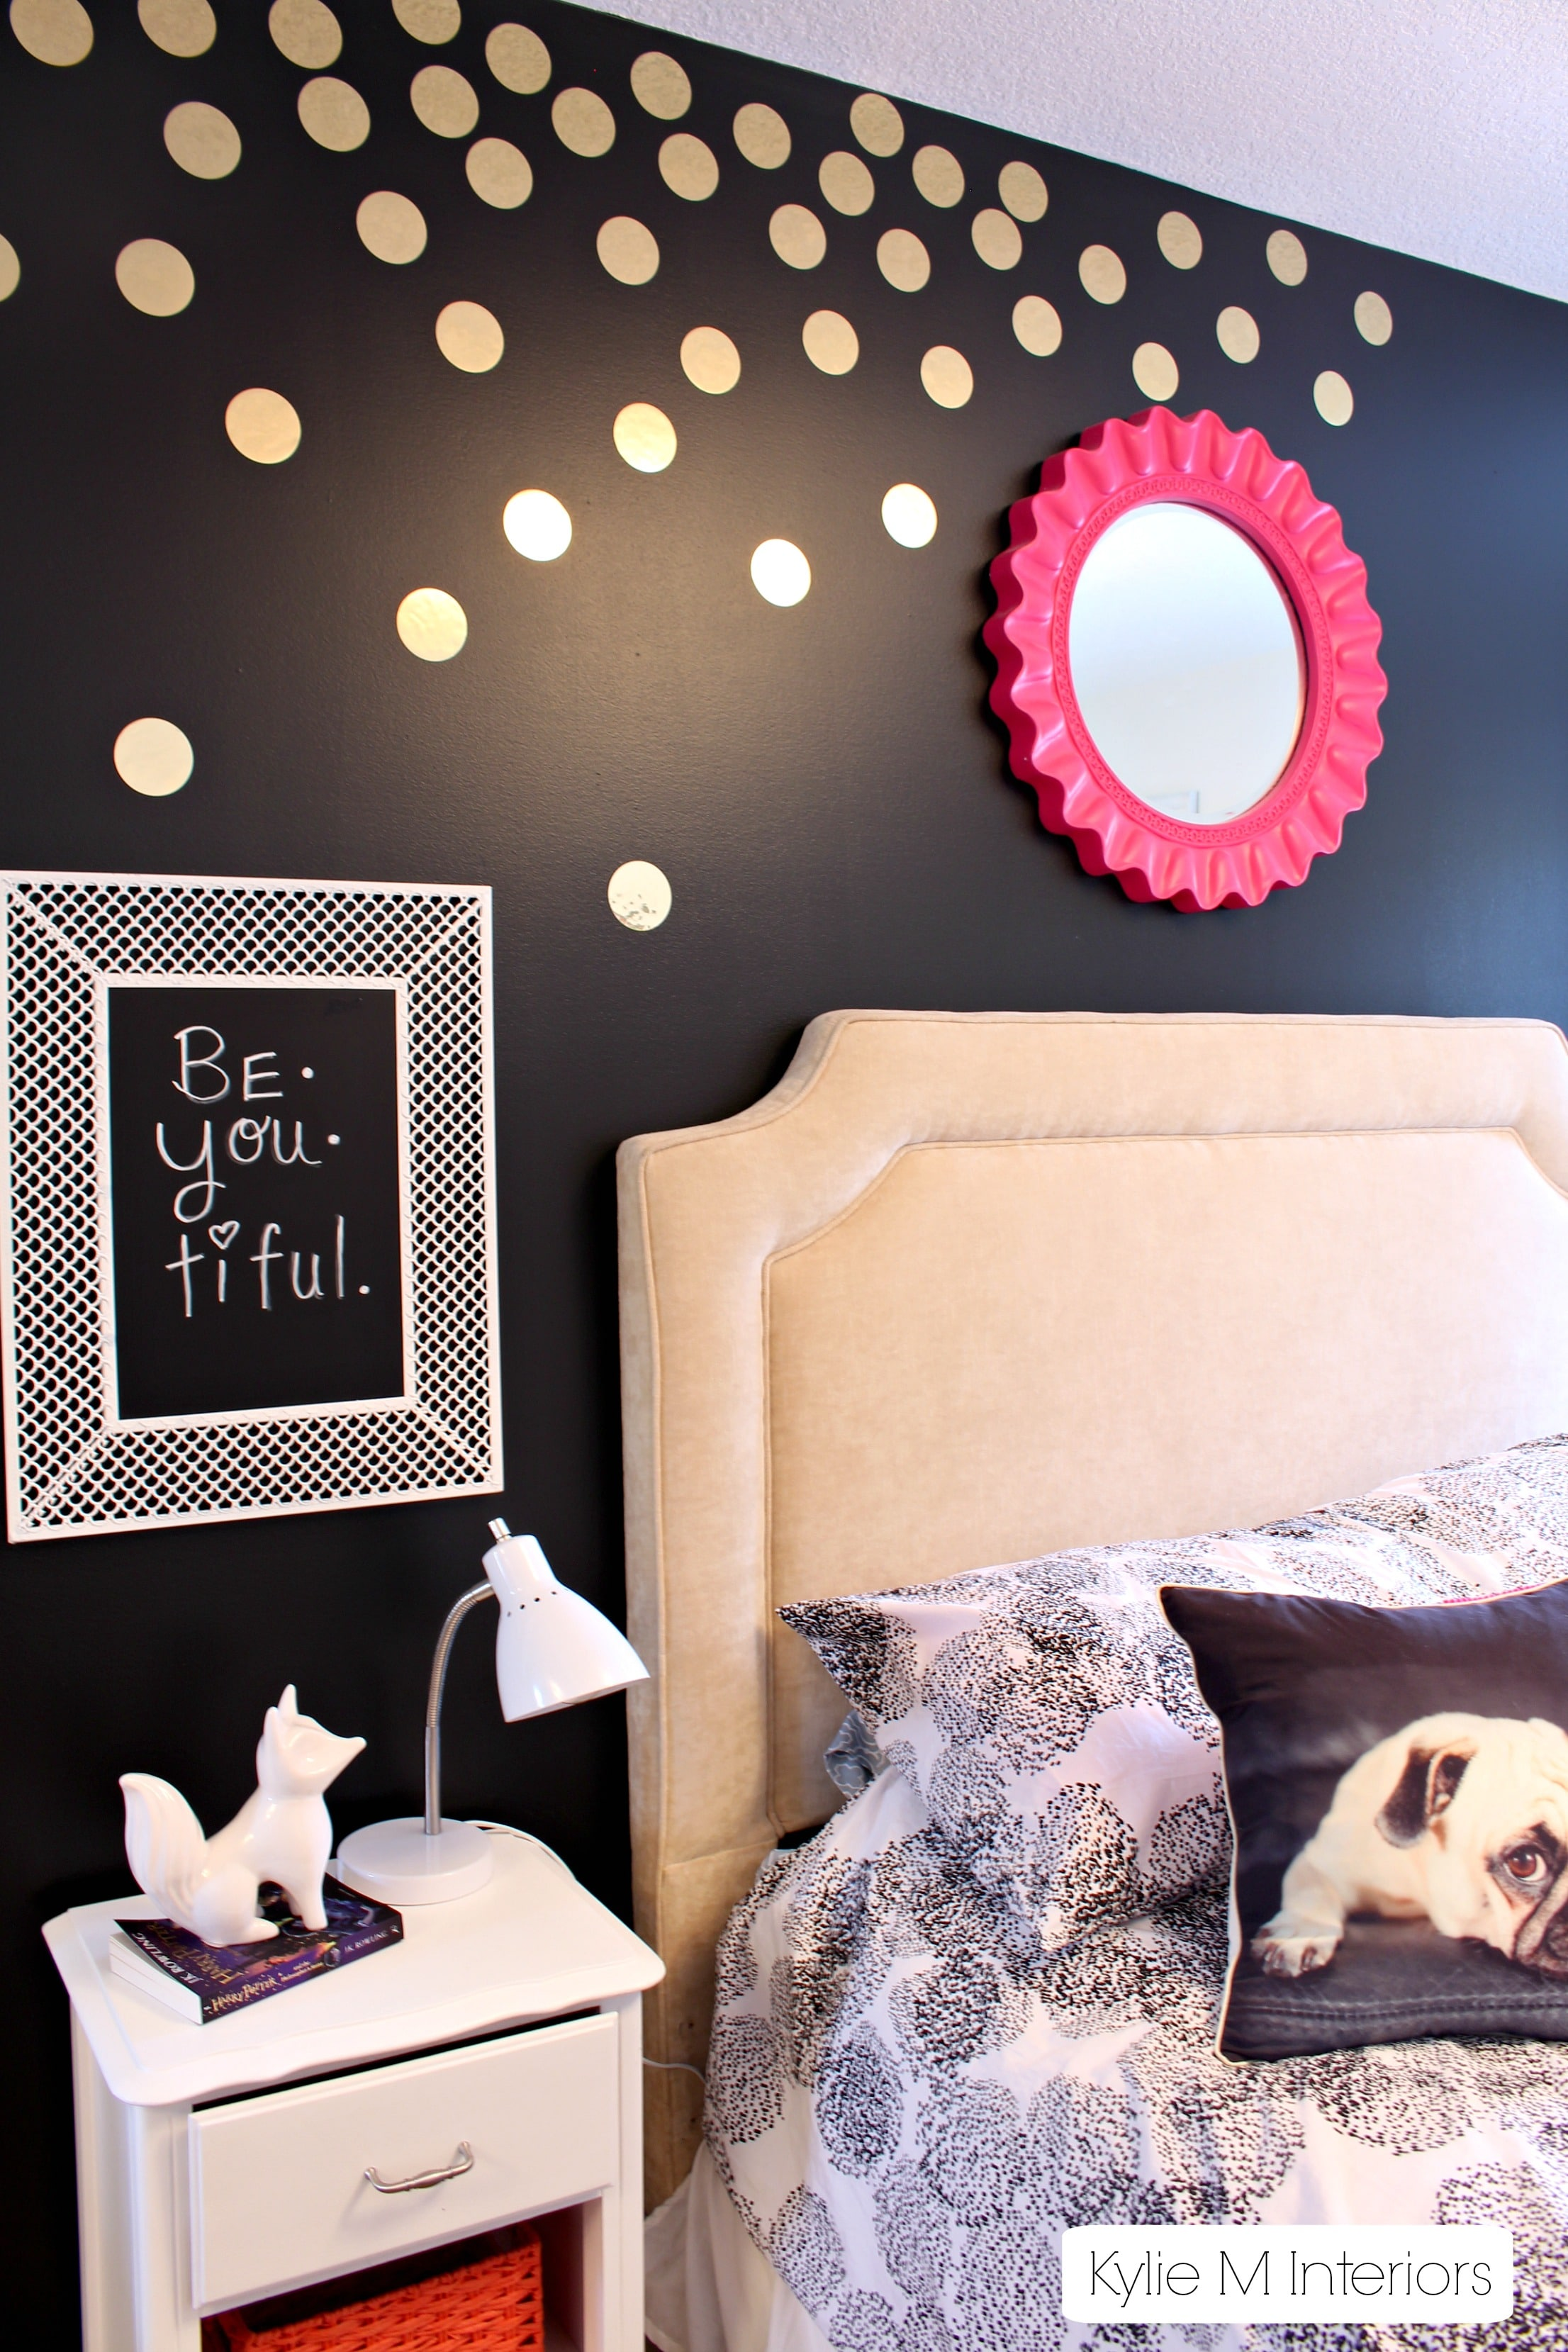 Gold Polka Dot Decals On Black Feature Wall In Tween Or Tween - Bedroom decor ideas feature wall